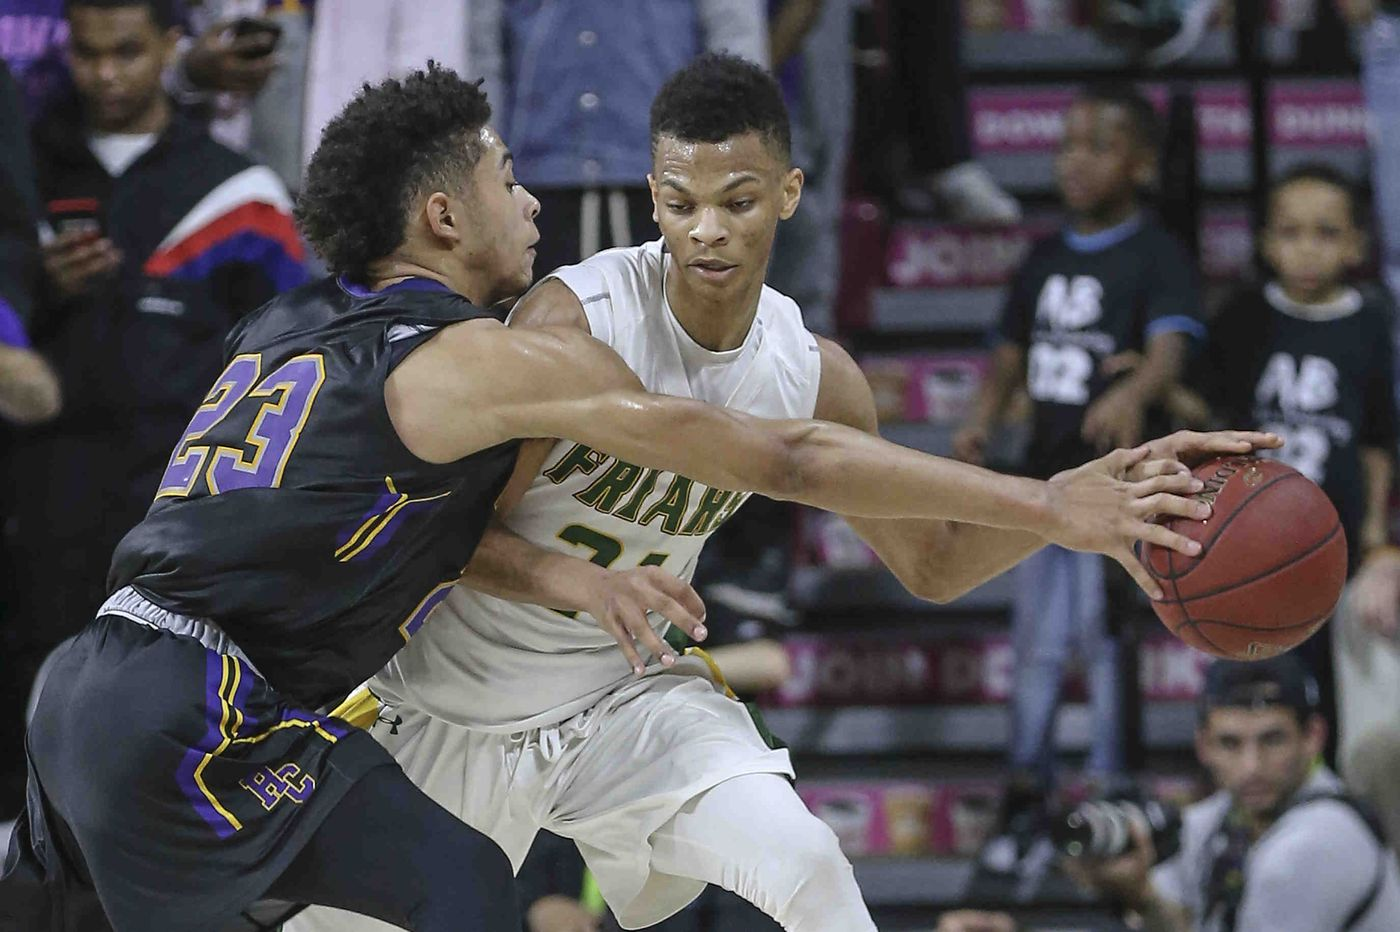 Isaiah Wong, Bonner-Prendergast fend off Donta Scott, Imhotep to win Class 4A District 12 championship